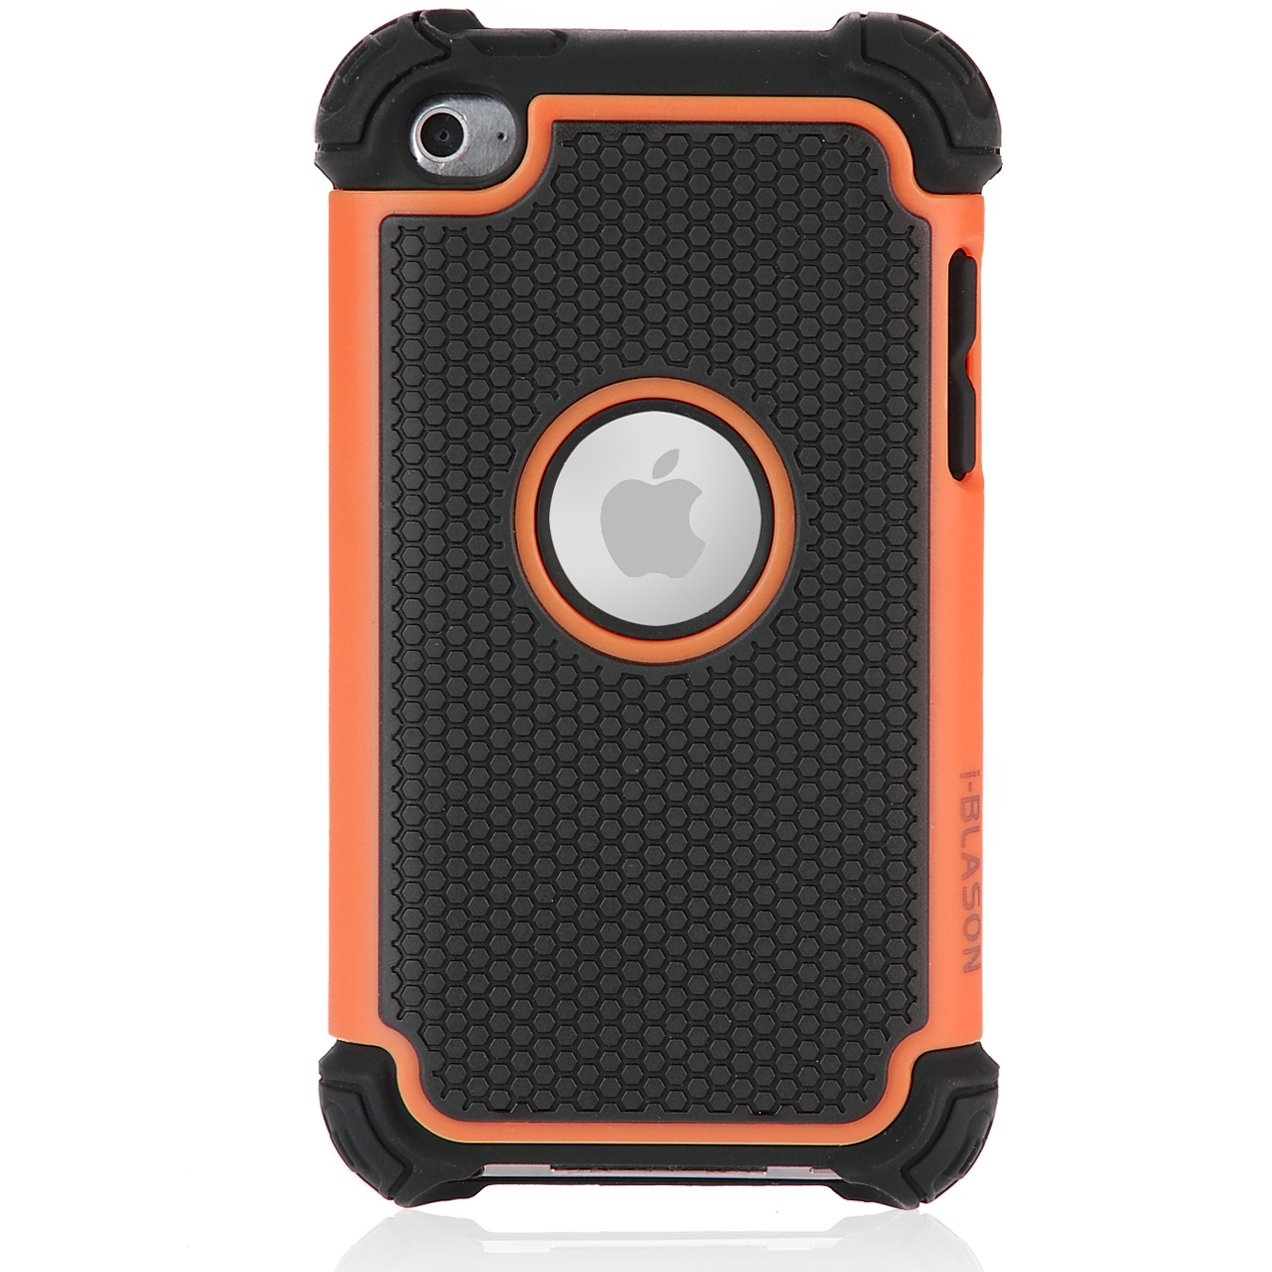 i-Blason Armadillo Series Two Layer Defender Silicone Case with Anti-Slip Hard Shell Outter Case for iTouch iPod Touch 4 4G